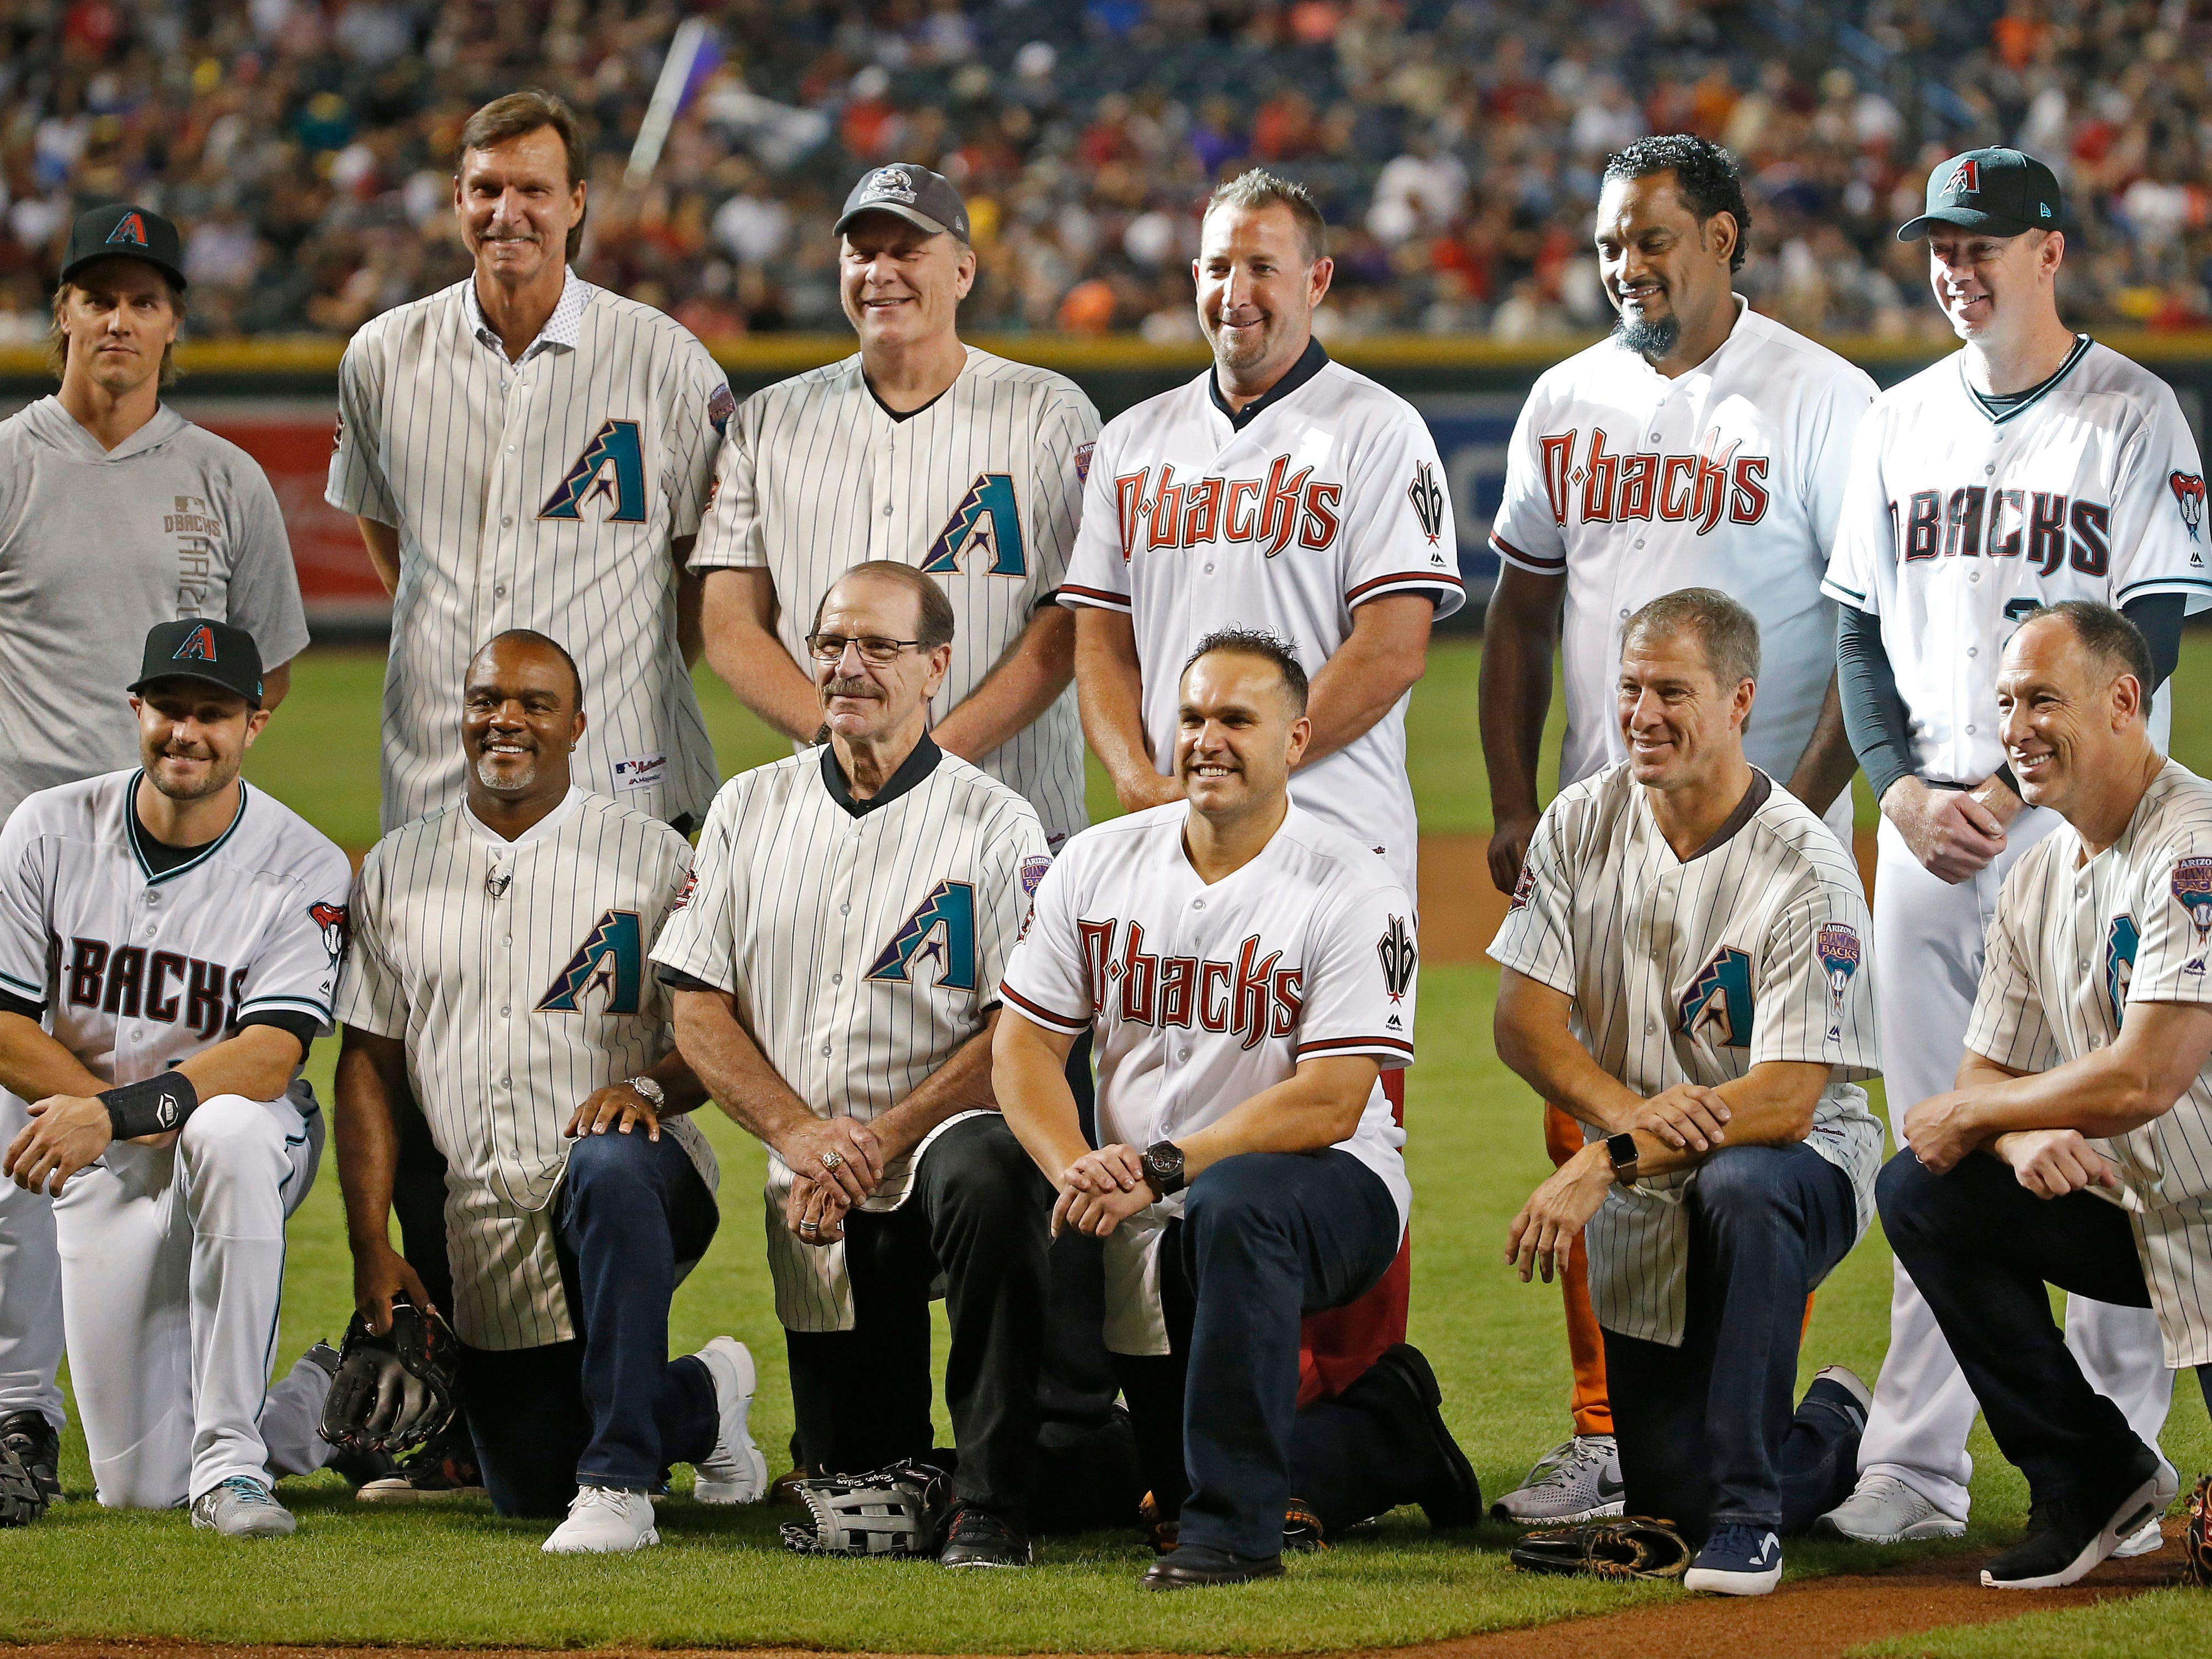 The Diamondbacks 20th Anniversary team members line up on the field after a ceremony and before a Diamondbacks game at Chase Field in Phoenix, Ariz. on Aug. 4, 2018.